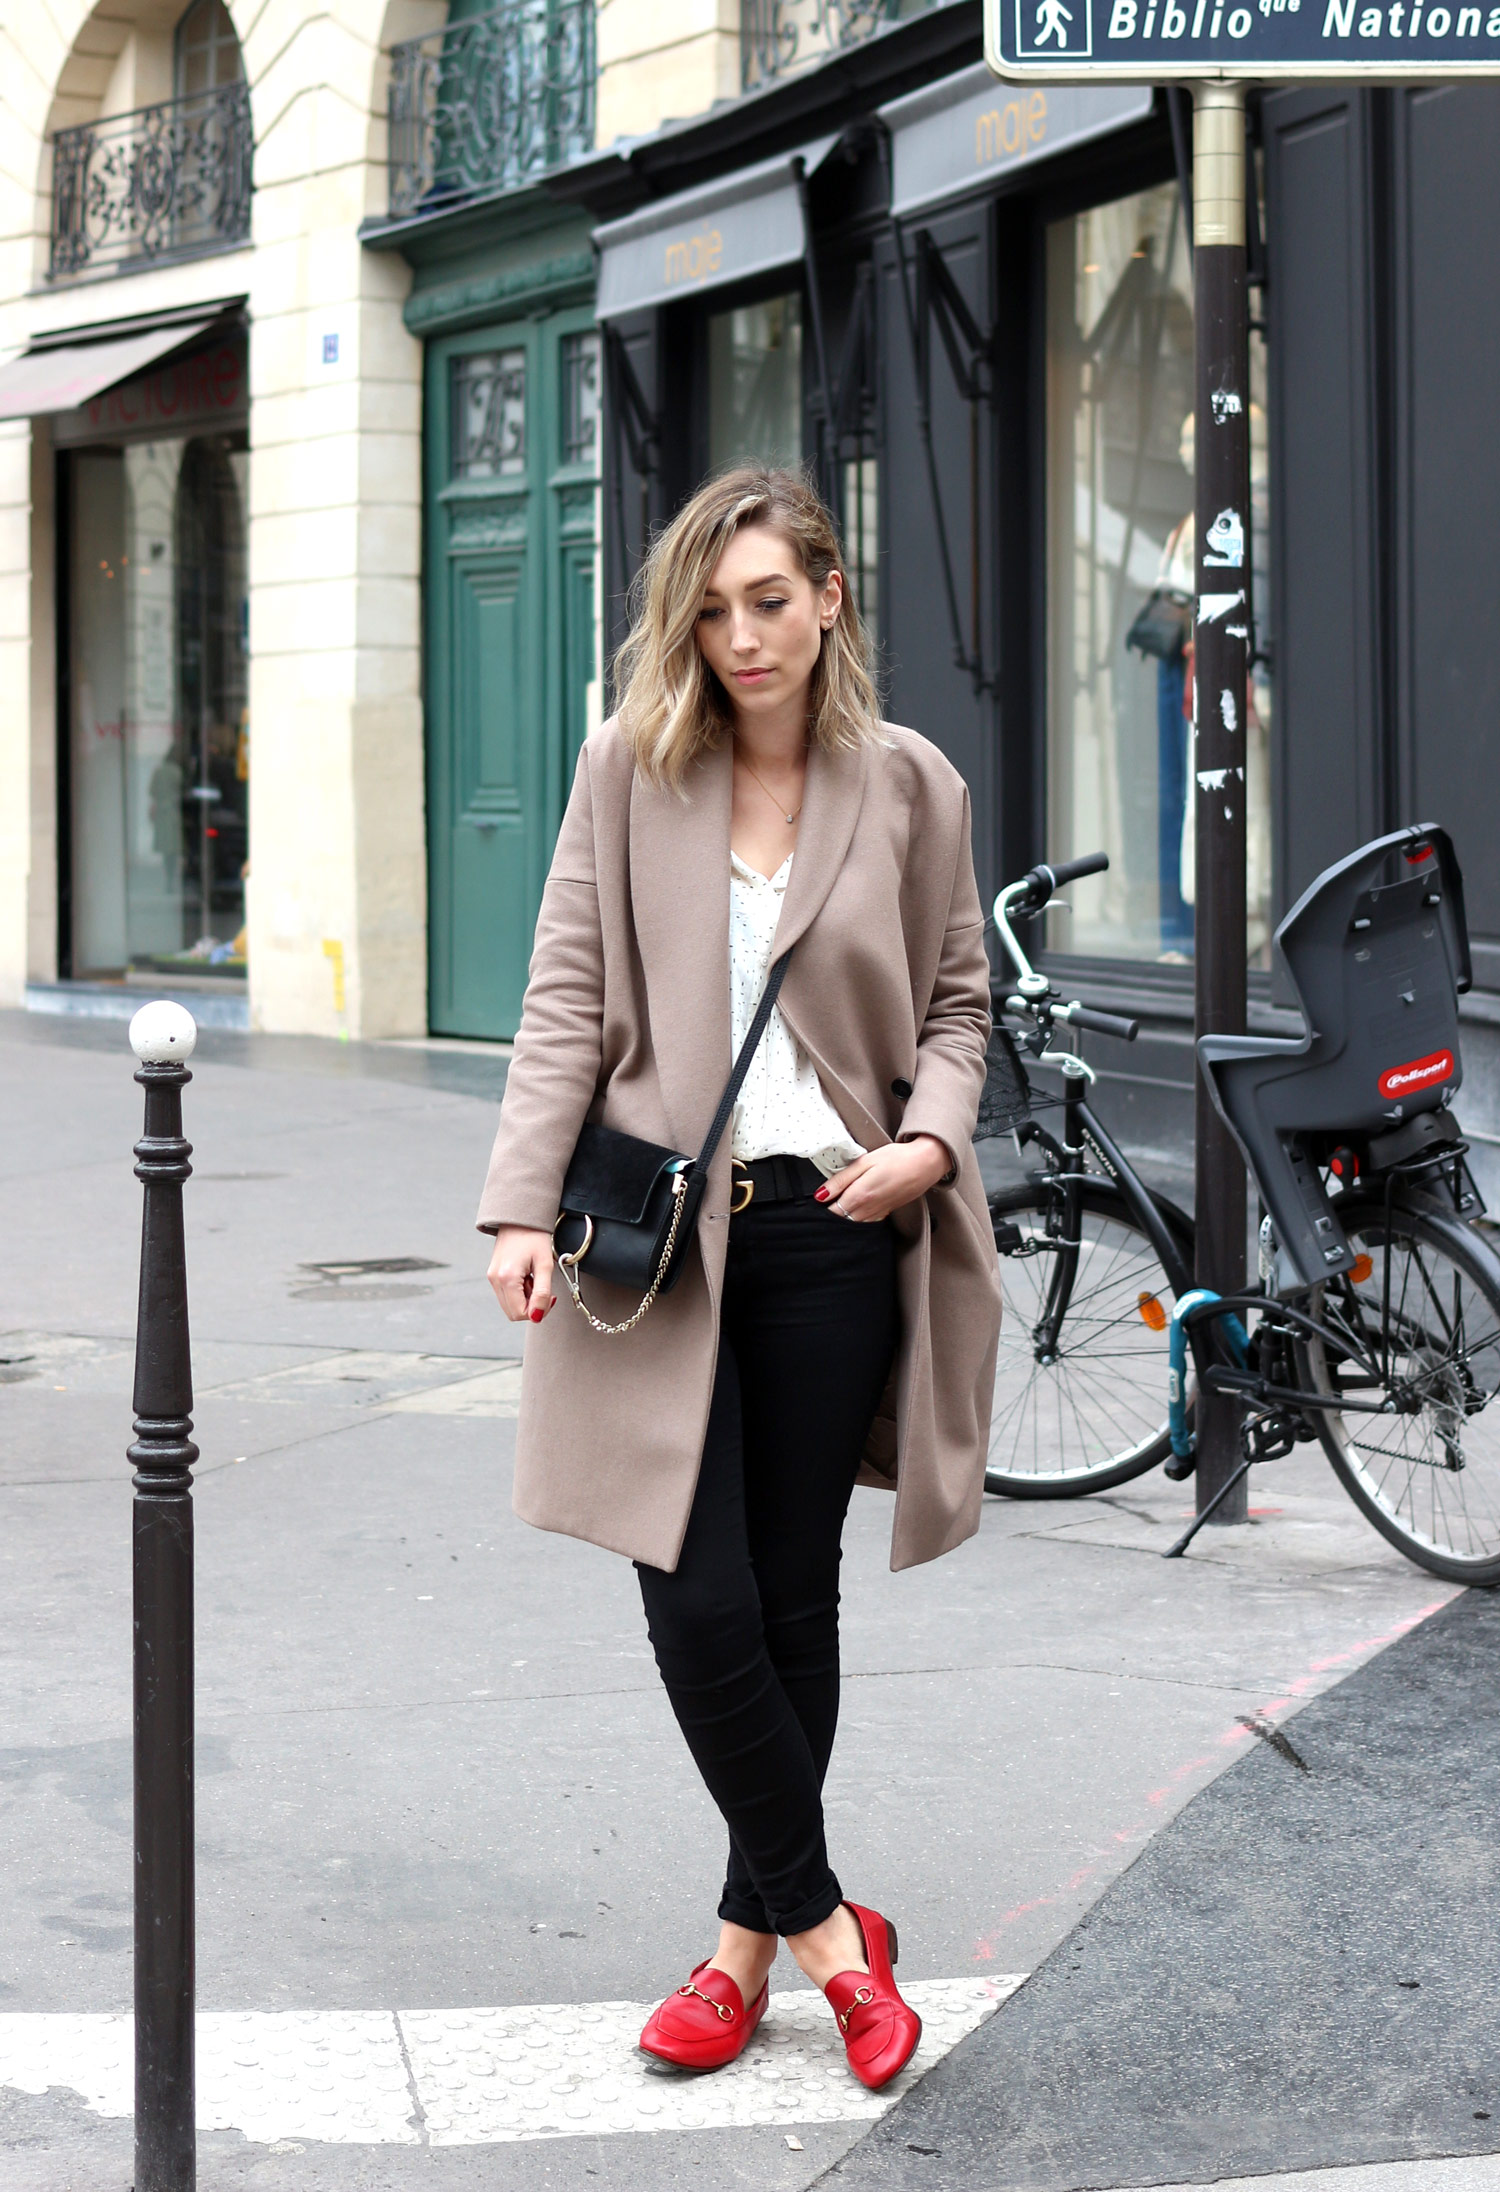 outfit-paris-photo-diary-travel-blogger-spring-2